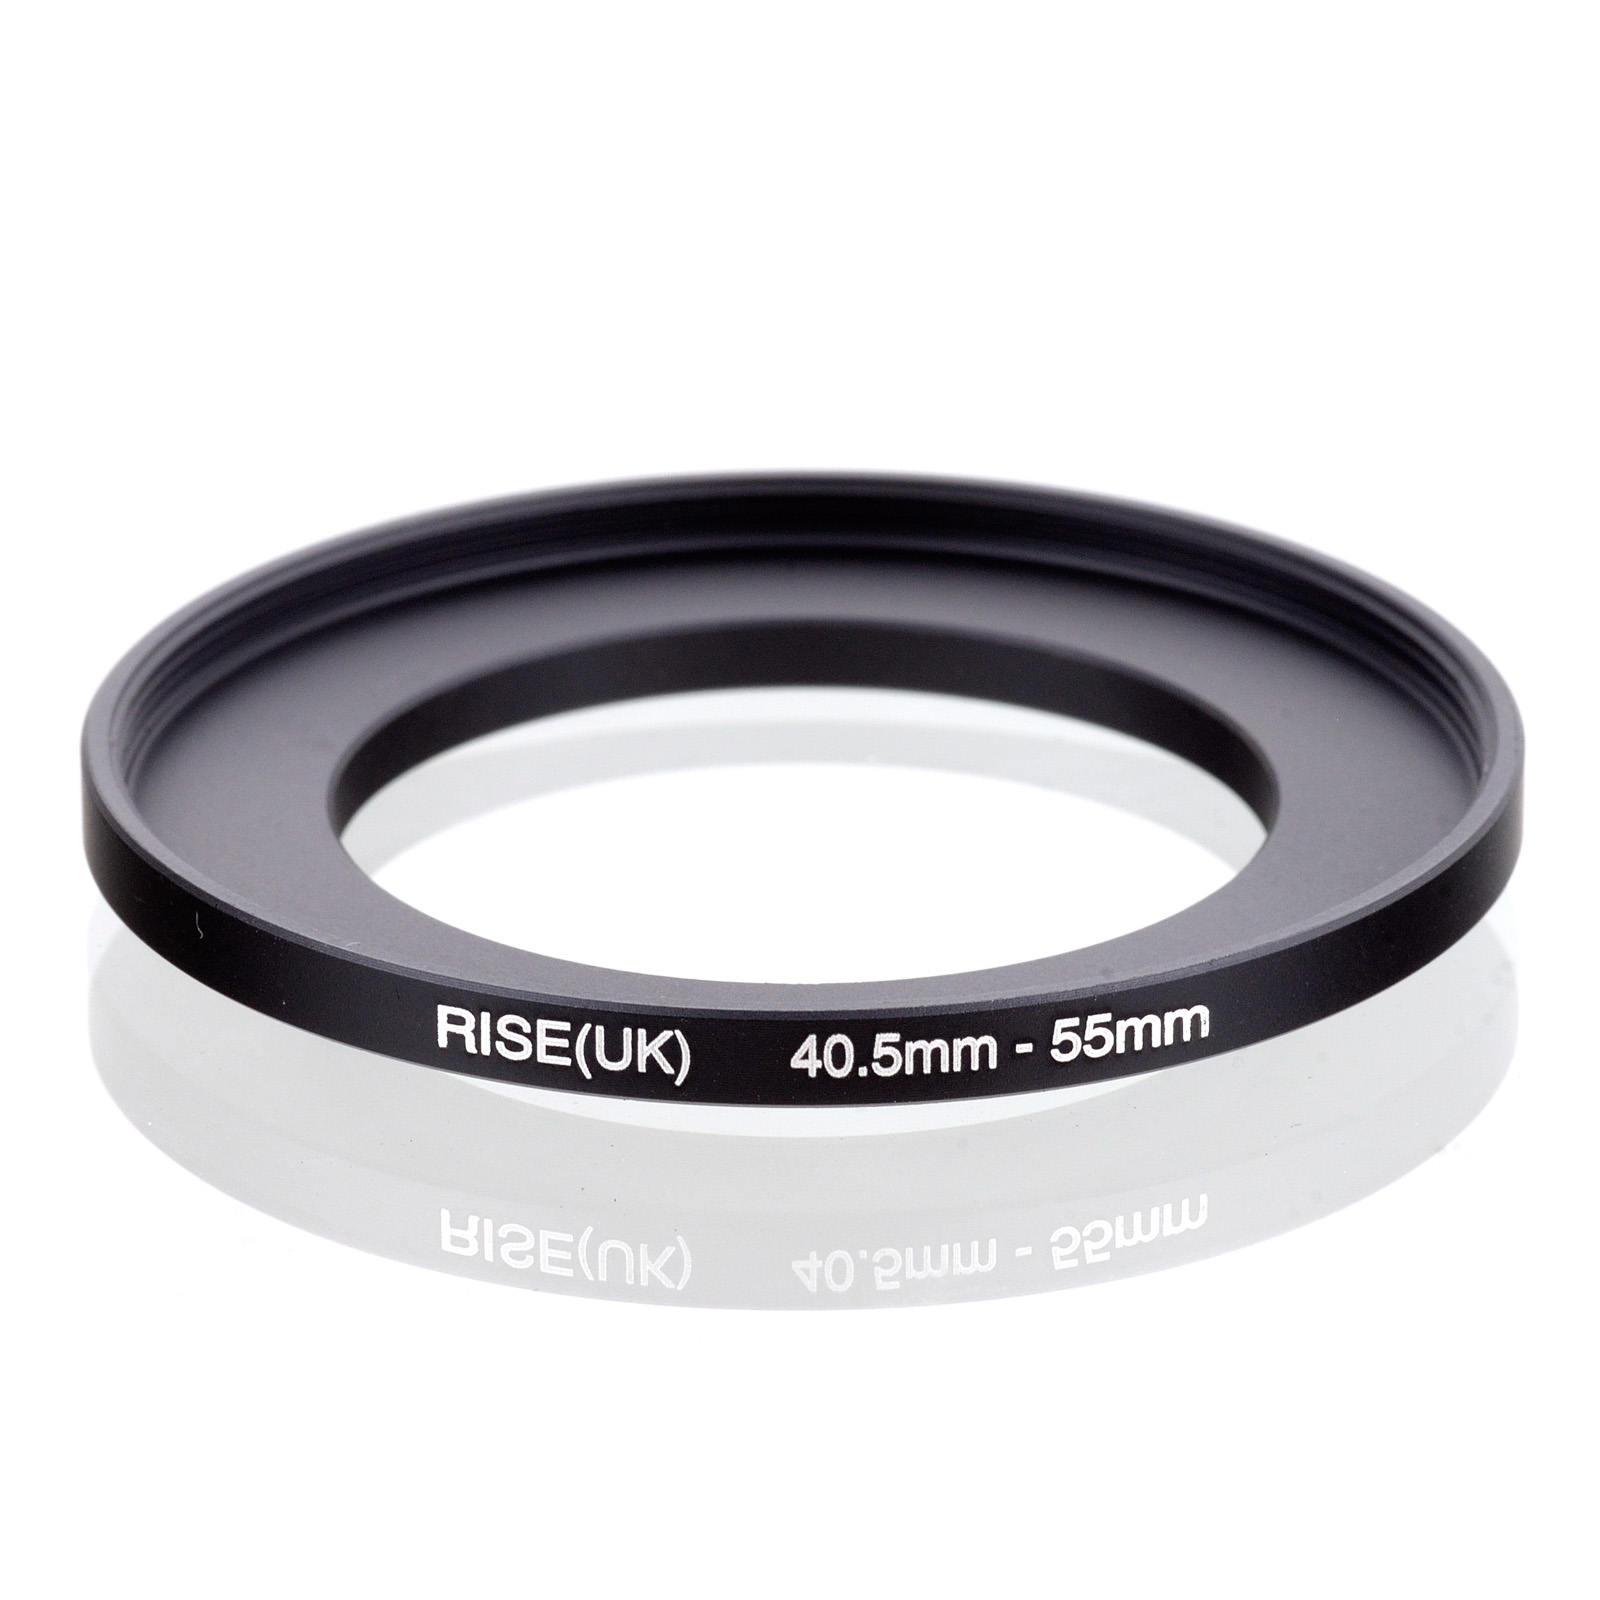 40.5mm-55mm 40.5-55 mm 40.5 to 55 Step UP Filter Ring Adapterfreeshipping